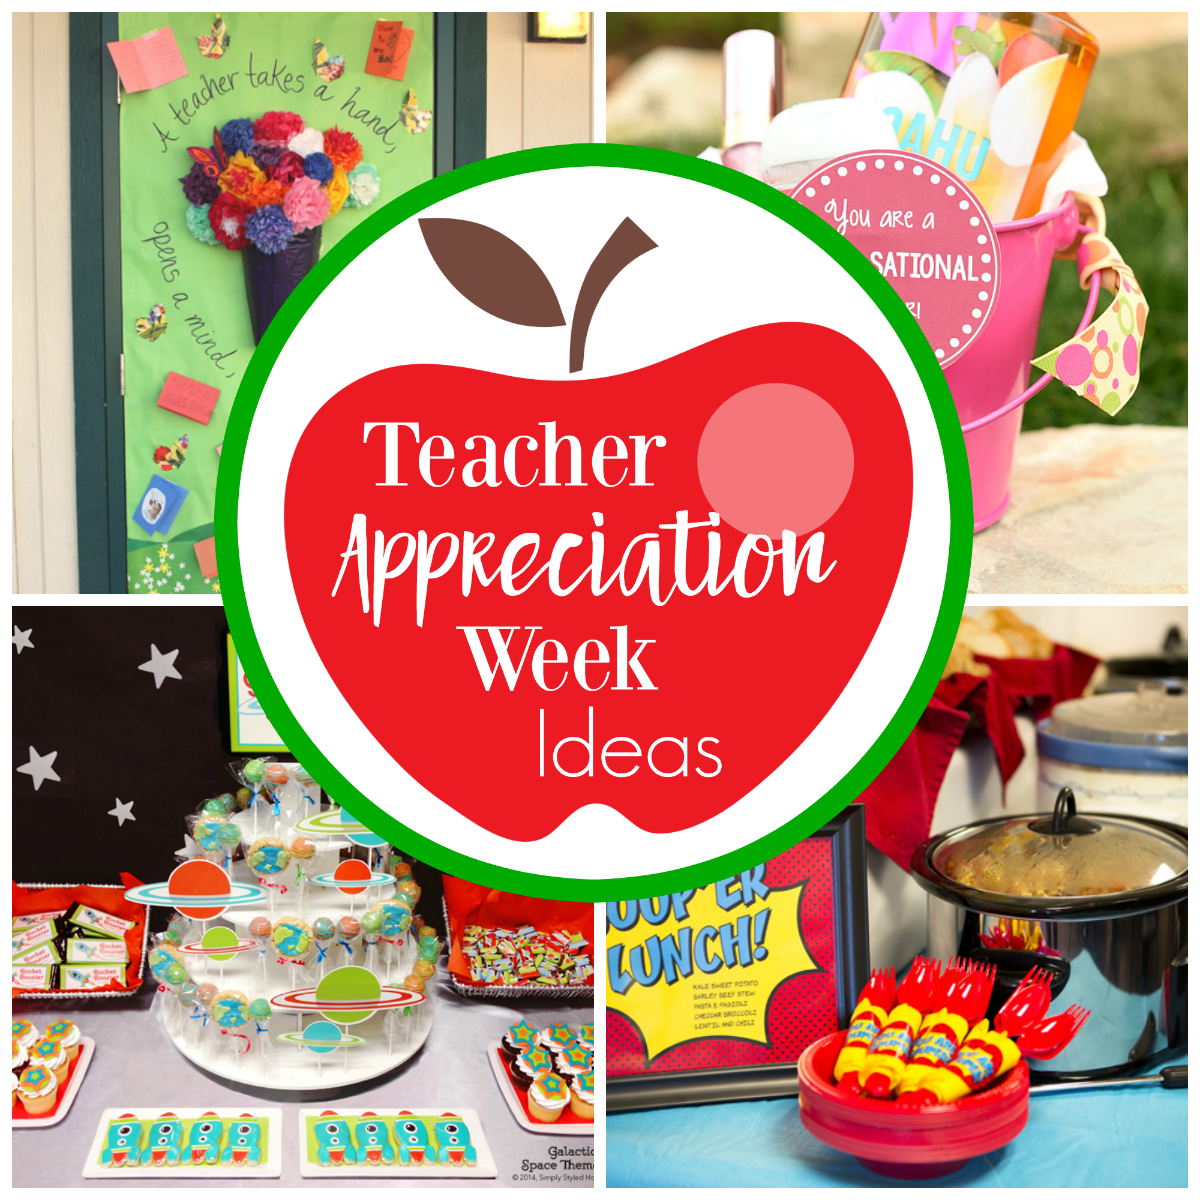 Teacher Appreciation Week Ideas